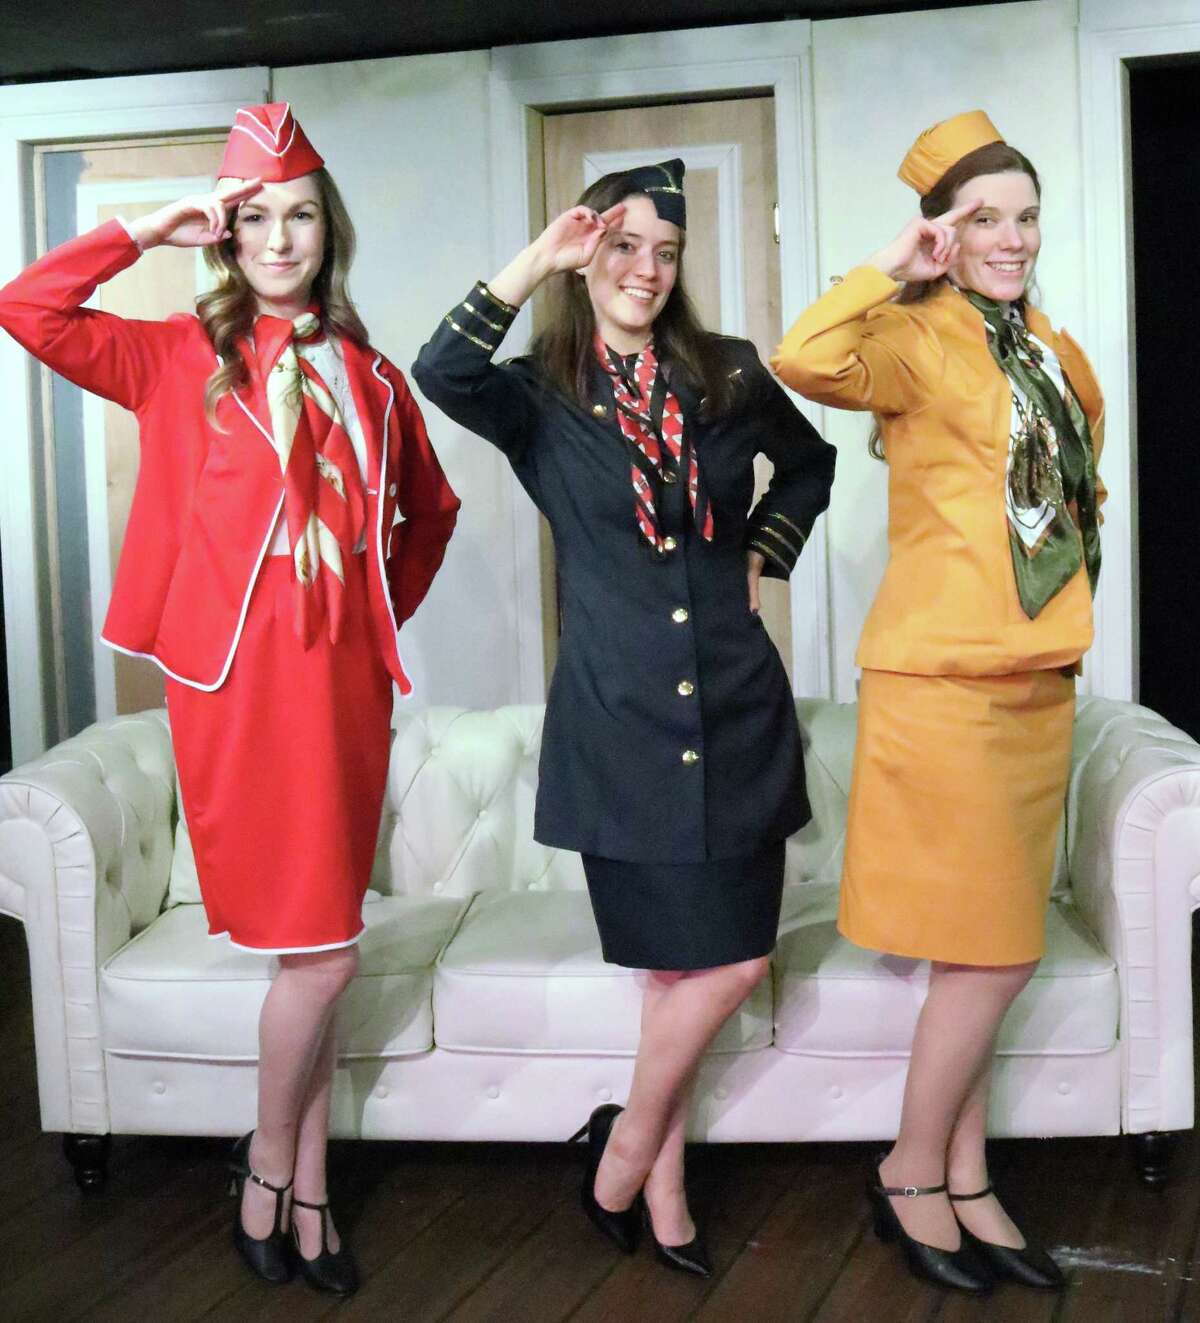 Meaghan Elliot, left, Monica Harrington and Sarah Sherwood from the cast of